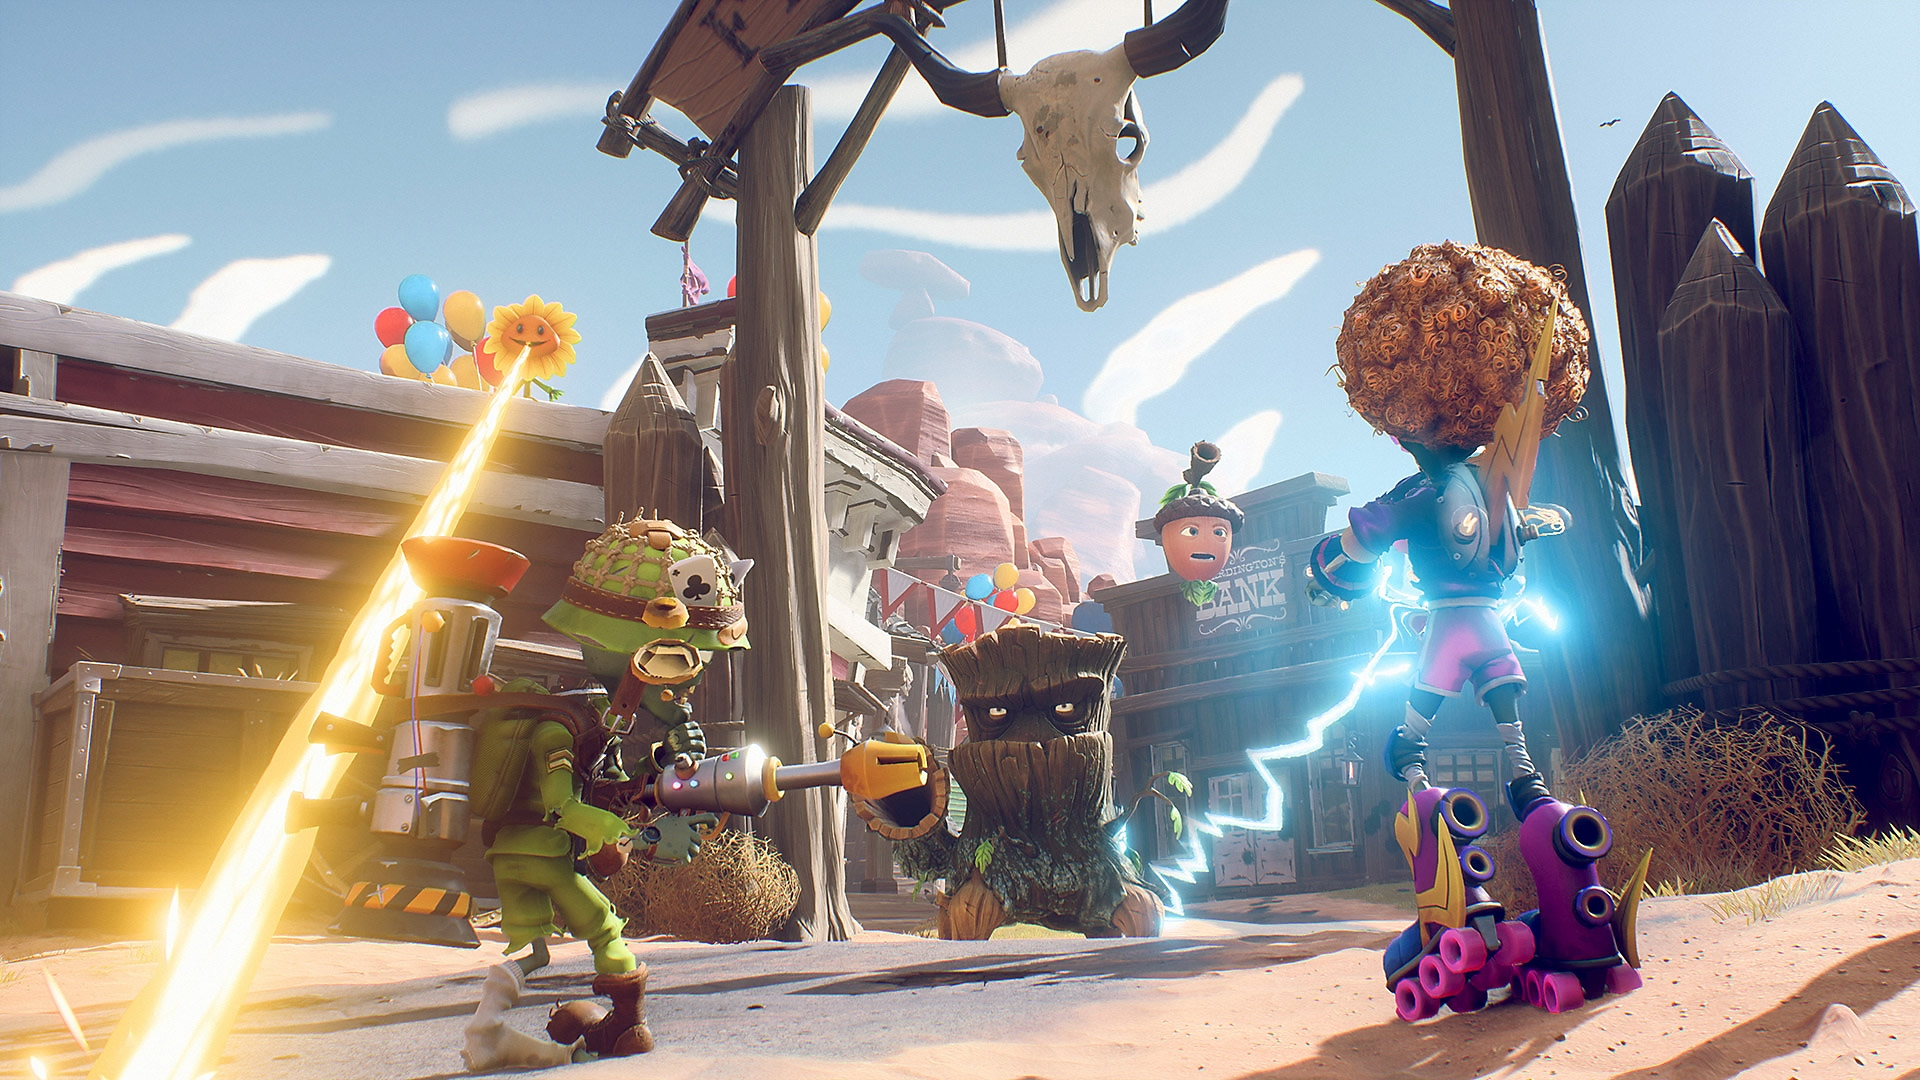 Plants vs. Zombies: La Batalla de Neighborville